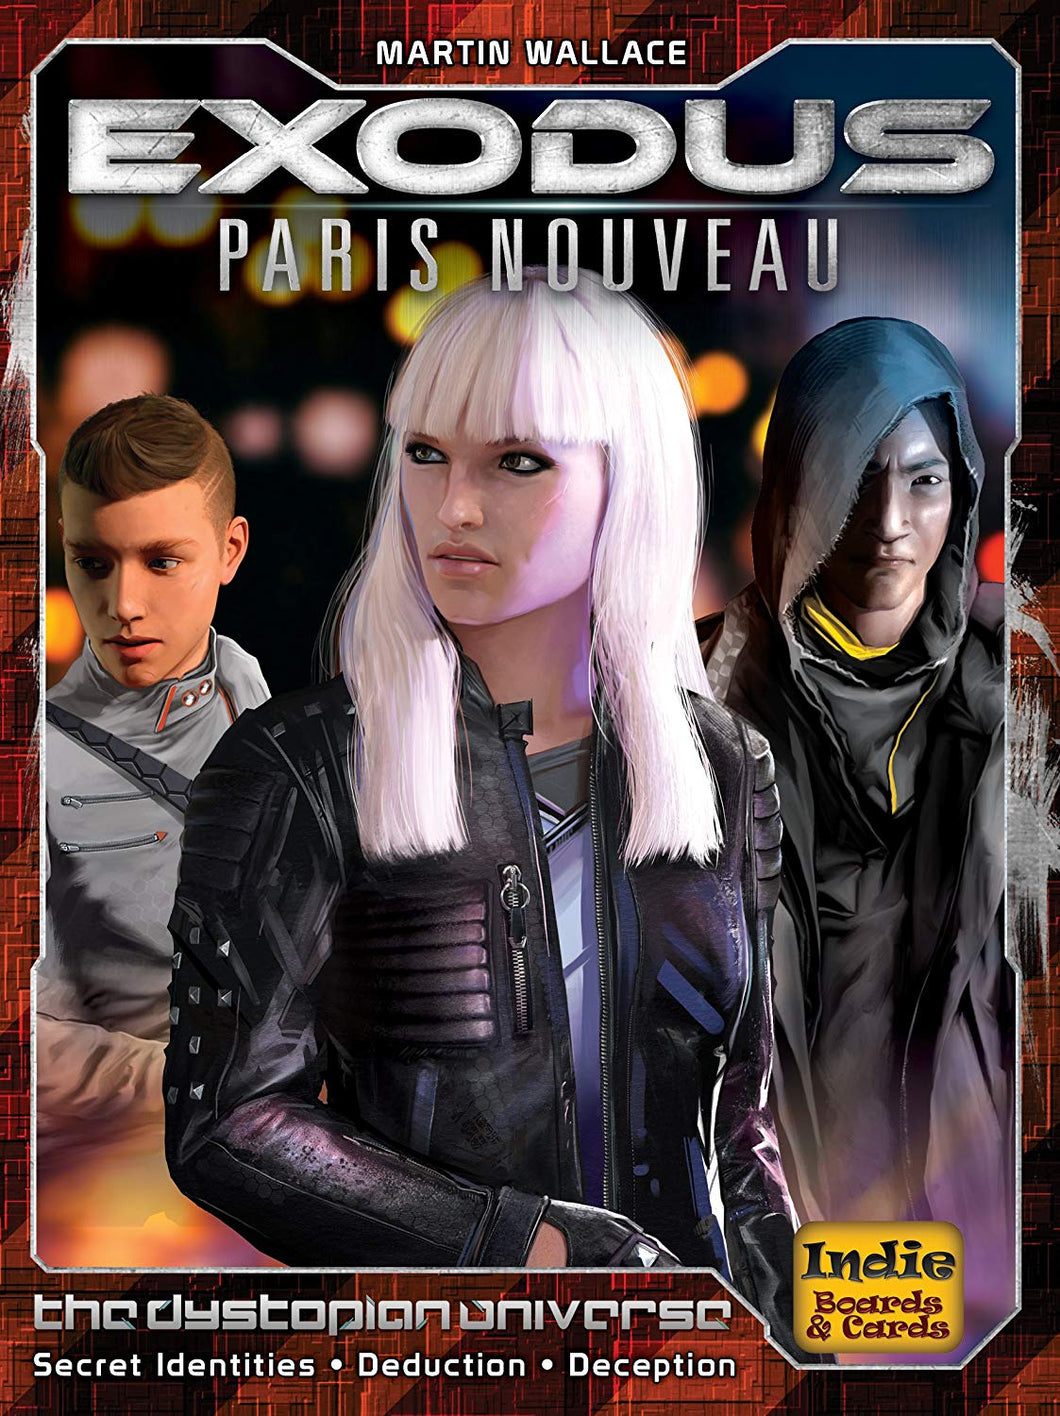 Exodus Paris Nouveau  by Martin Wallace | Indie Boards & Cards - Kickstarted Games